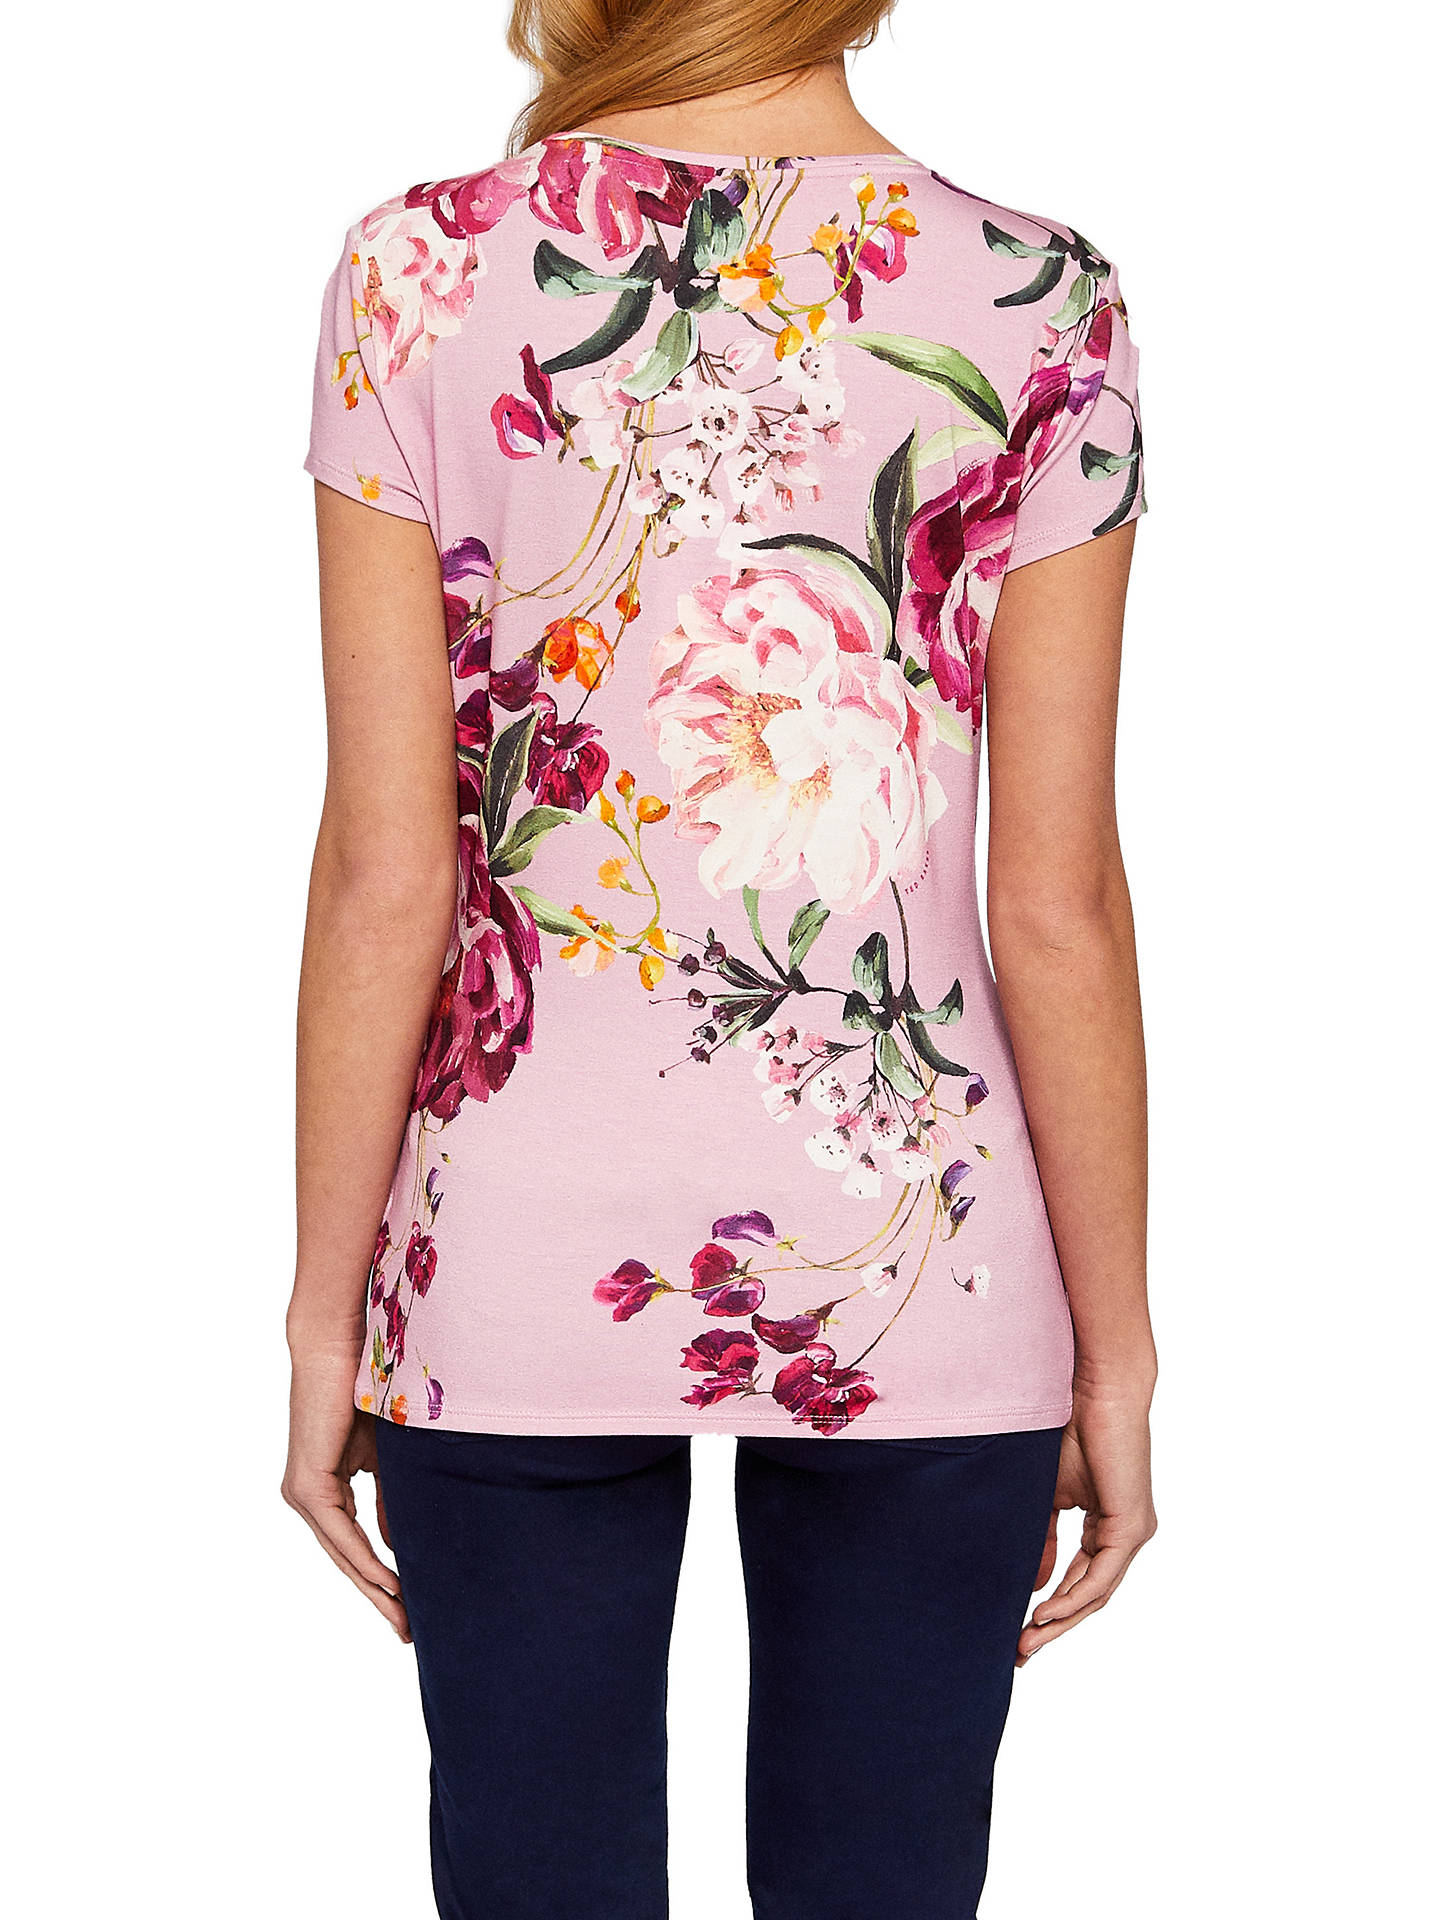 BuyTed Baker Evaai Serenity Print Fitted T-shirt, Purple, 6 Online at johnlewis.com